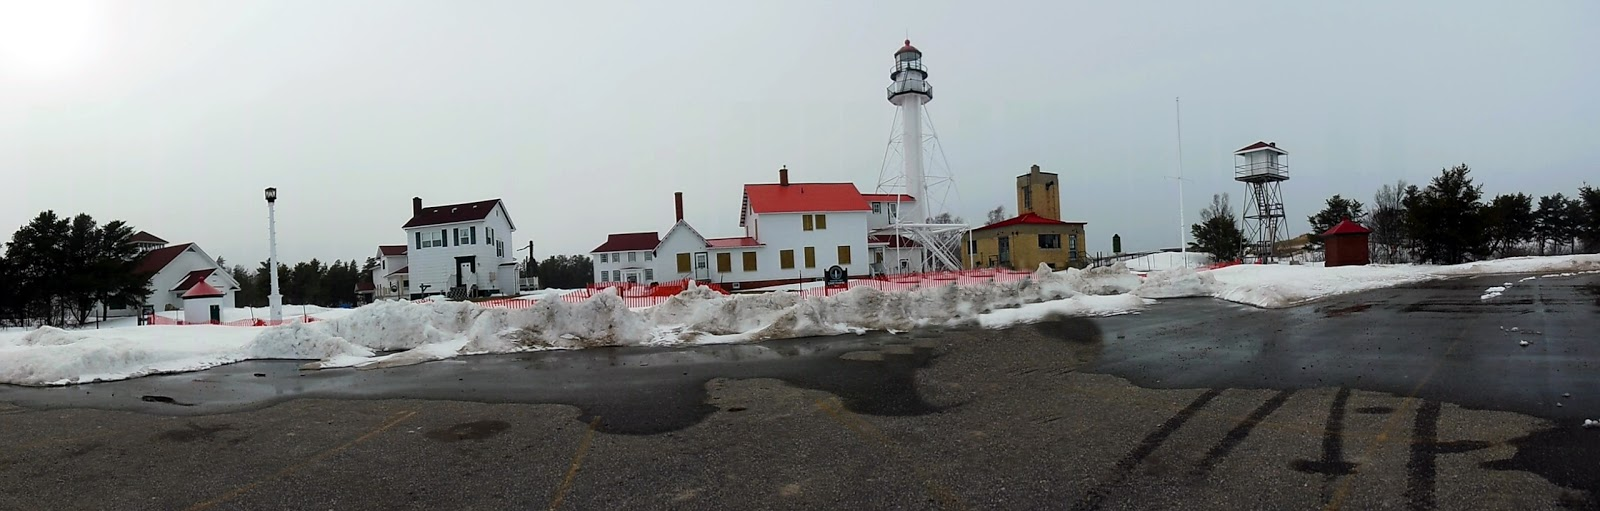 Focusing on travel whitefish point light lodging for White fish point